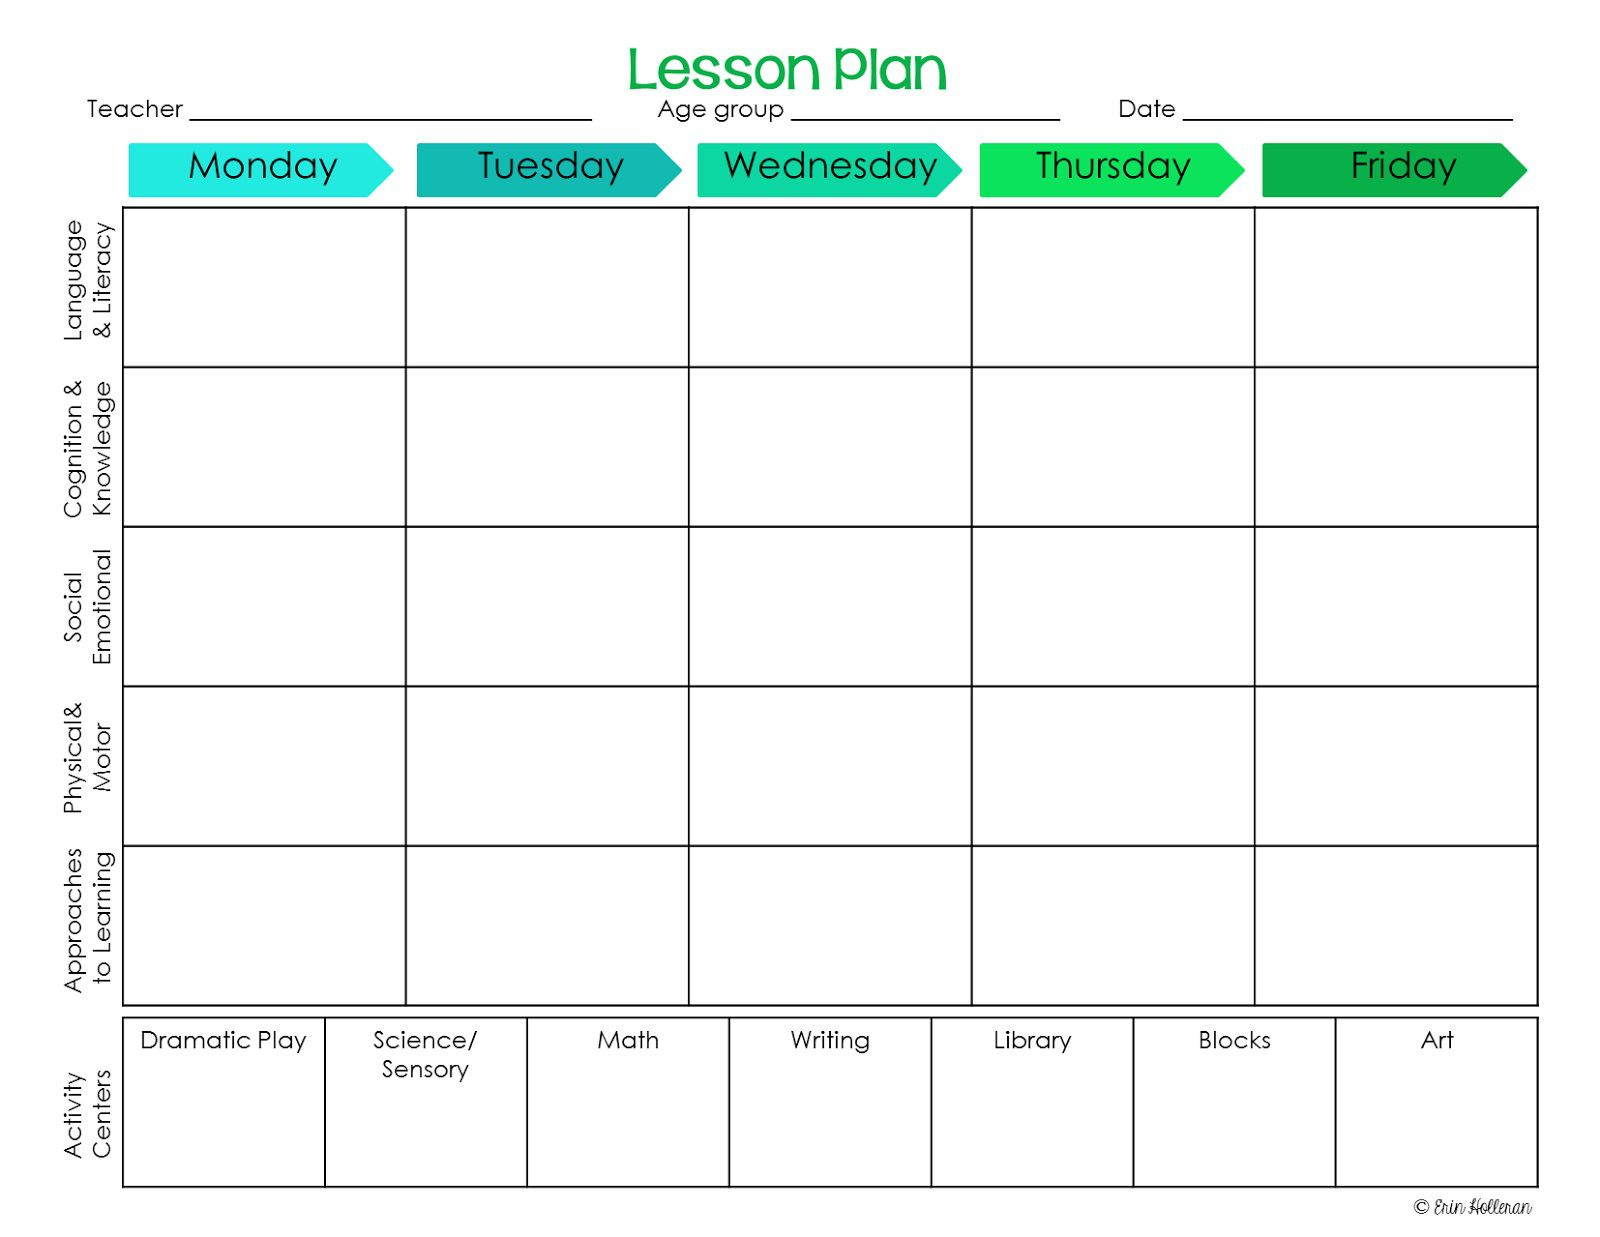 000 Awesome Preschool Lesson Plan Template Example  Free Printable Creative Curriculum DocFull